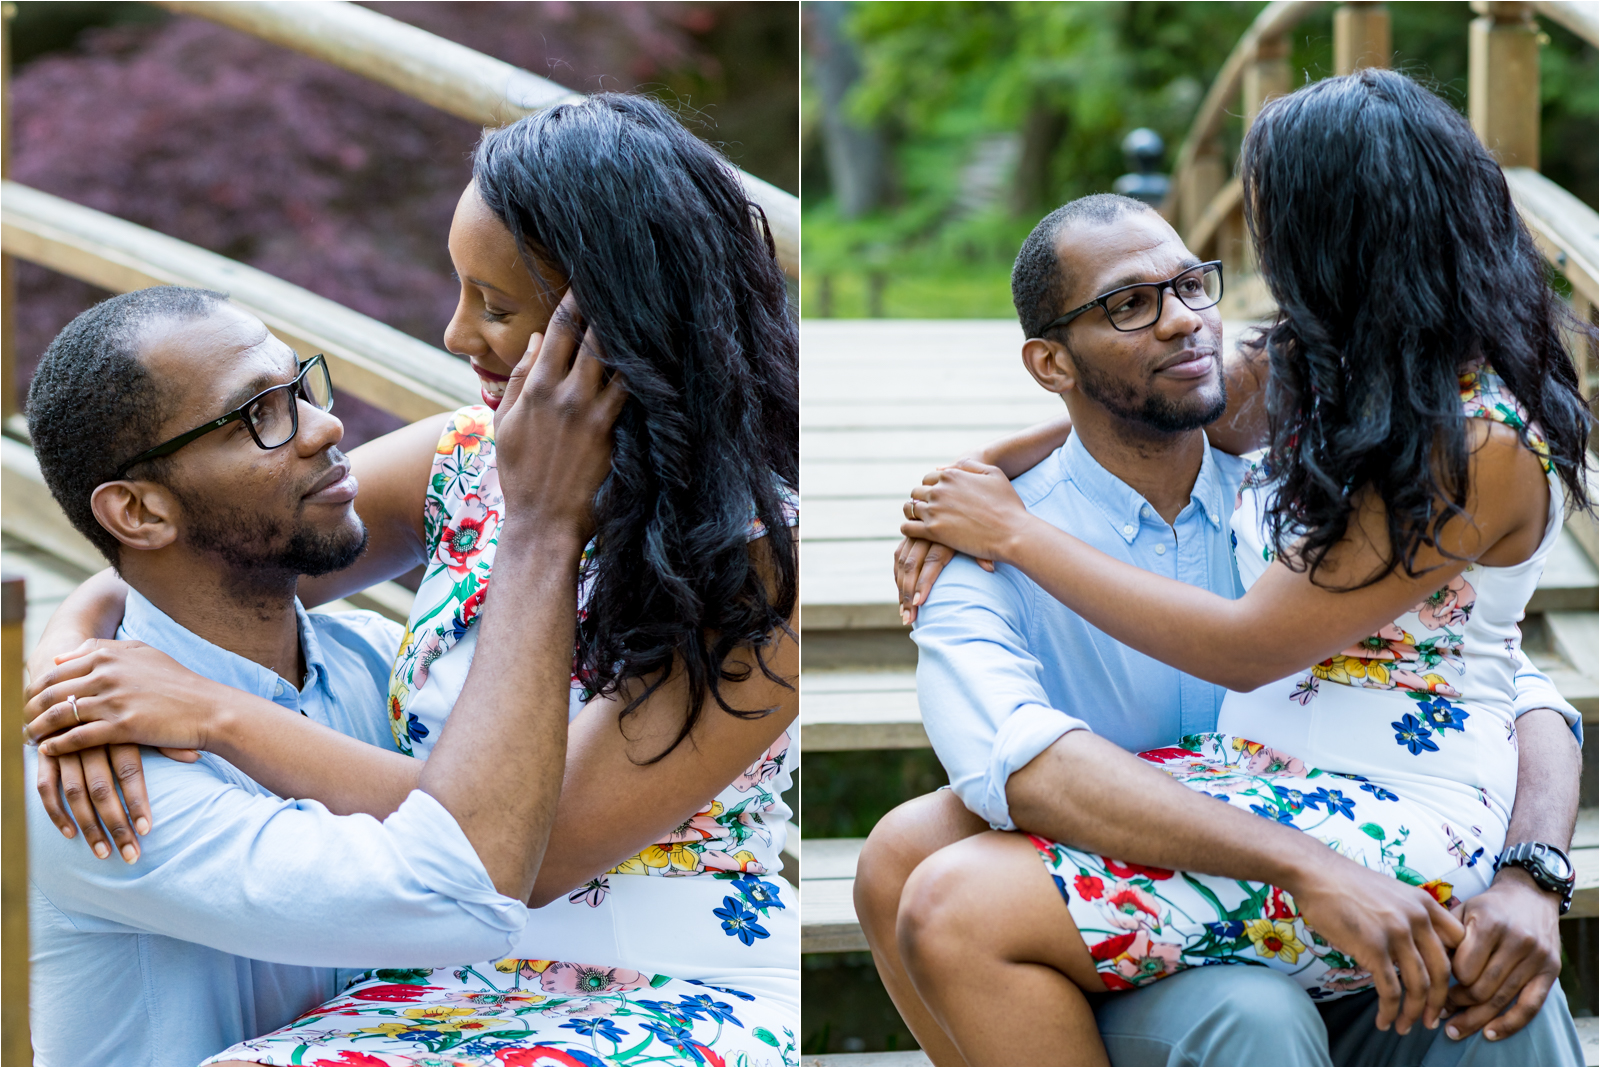 japanese-gardens-japanesegardens-engagement-images-maymont-park-italian-japanese-gardens-richmond-virginia-rva-va-focus-on-joy-photography-african-american-couple-white-dress-colorful-flowers-blue-polo-shirt-richmond